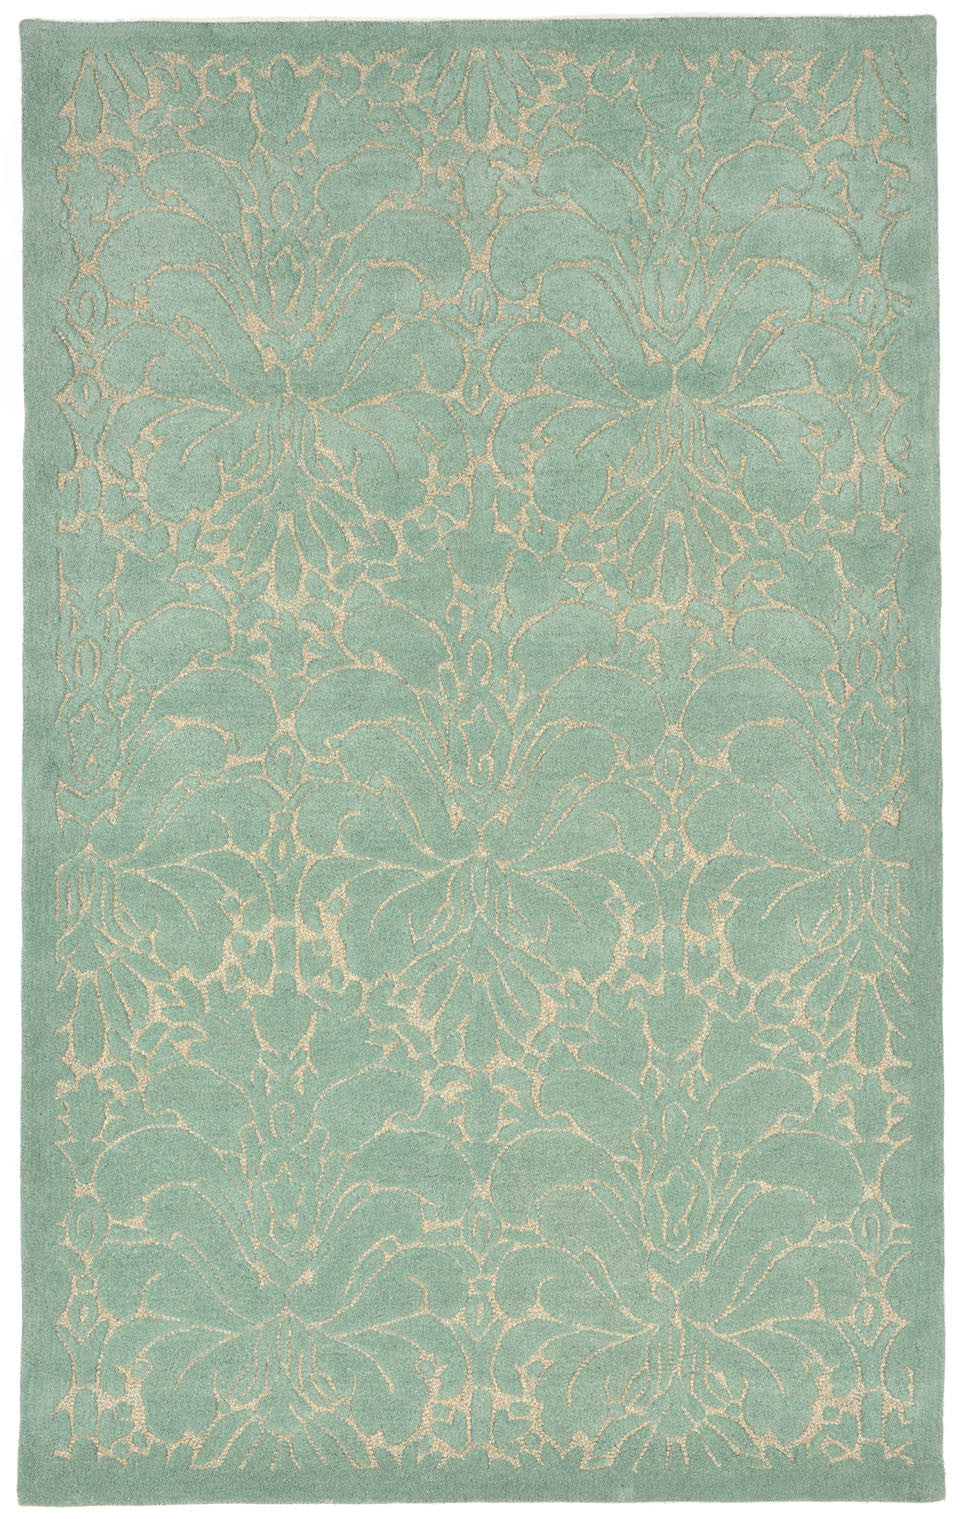 Trans-Ocean Imports SEV46965404 Seville Collection Blue Finish Indoor Rug from Trans-Ocean